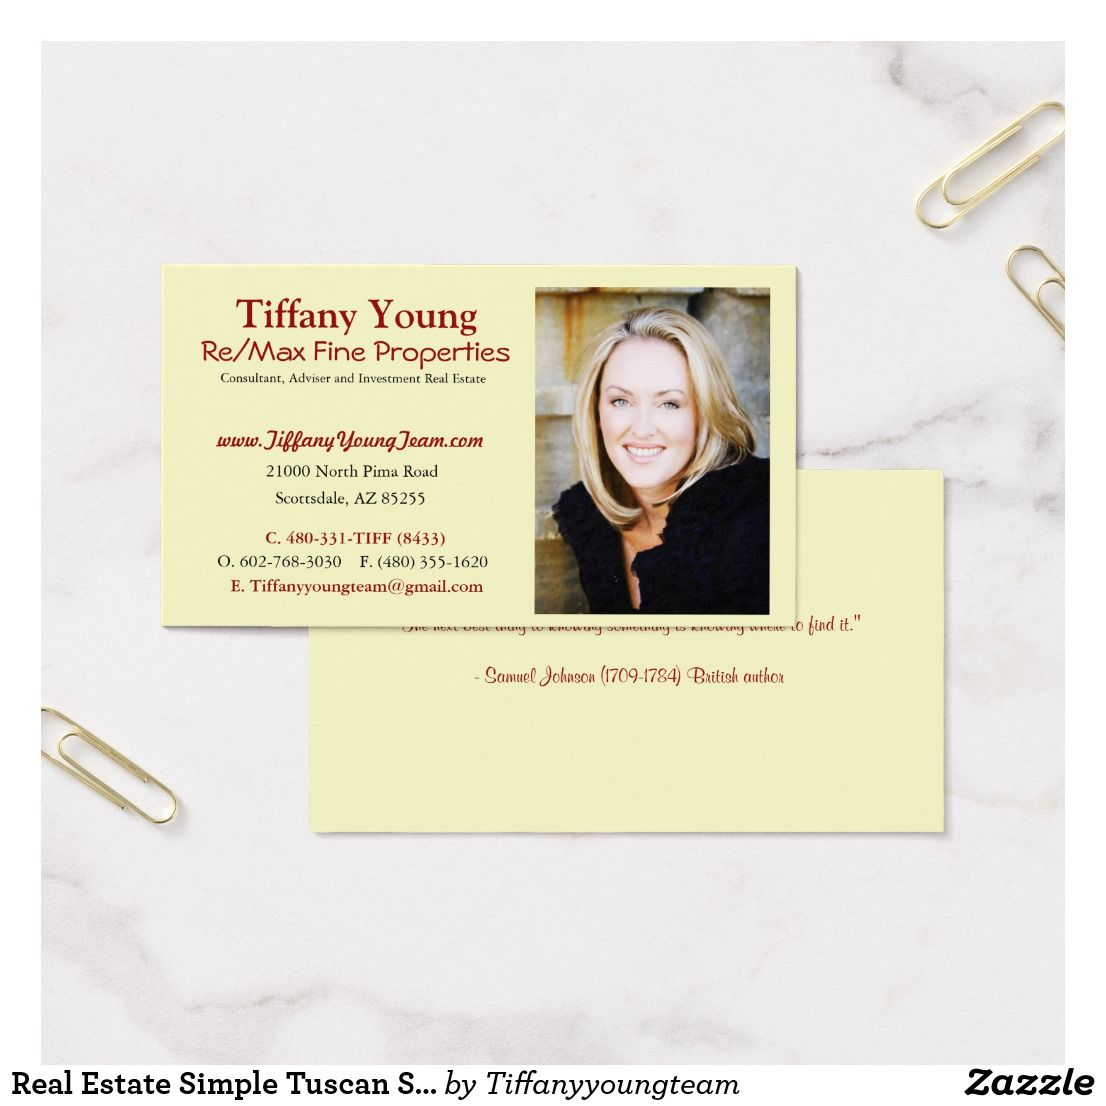 Real estate simple tuscan style photo w quote business card real estate simple tuscan style photo w quote business card colourmoves